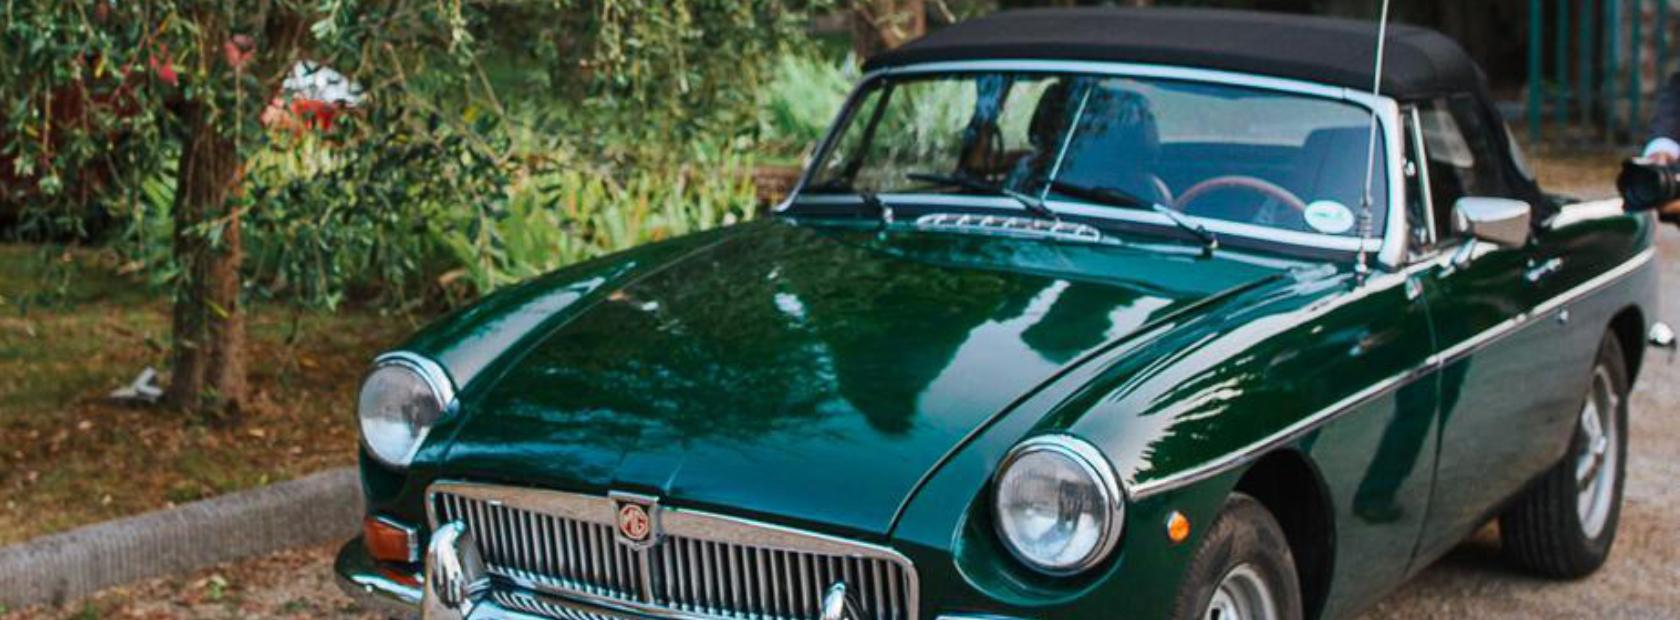 Noleggio MG B spider verde, per matrimoni e week end in Umbria